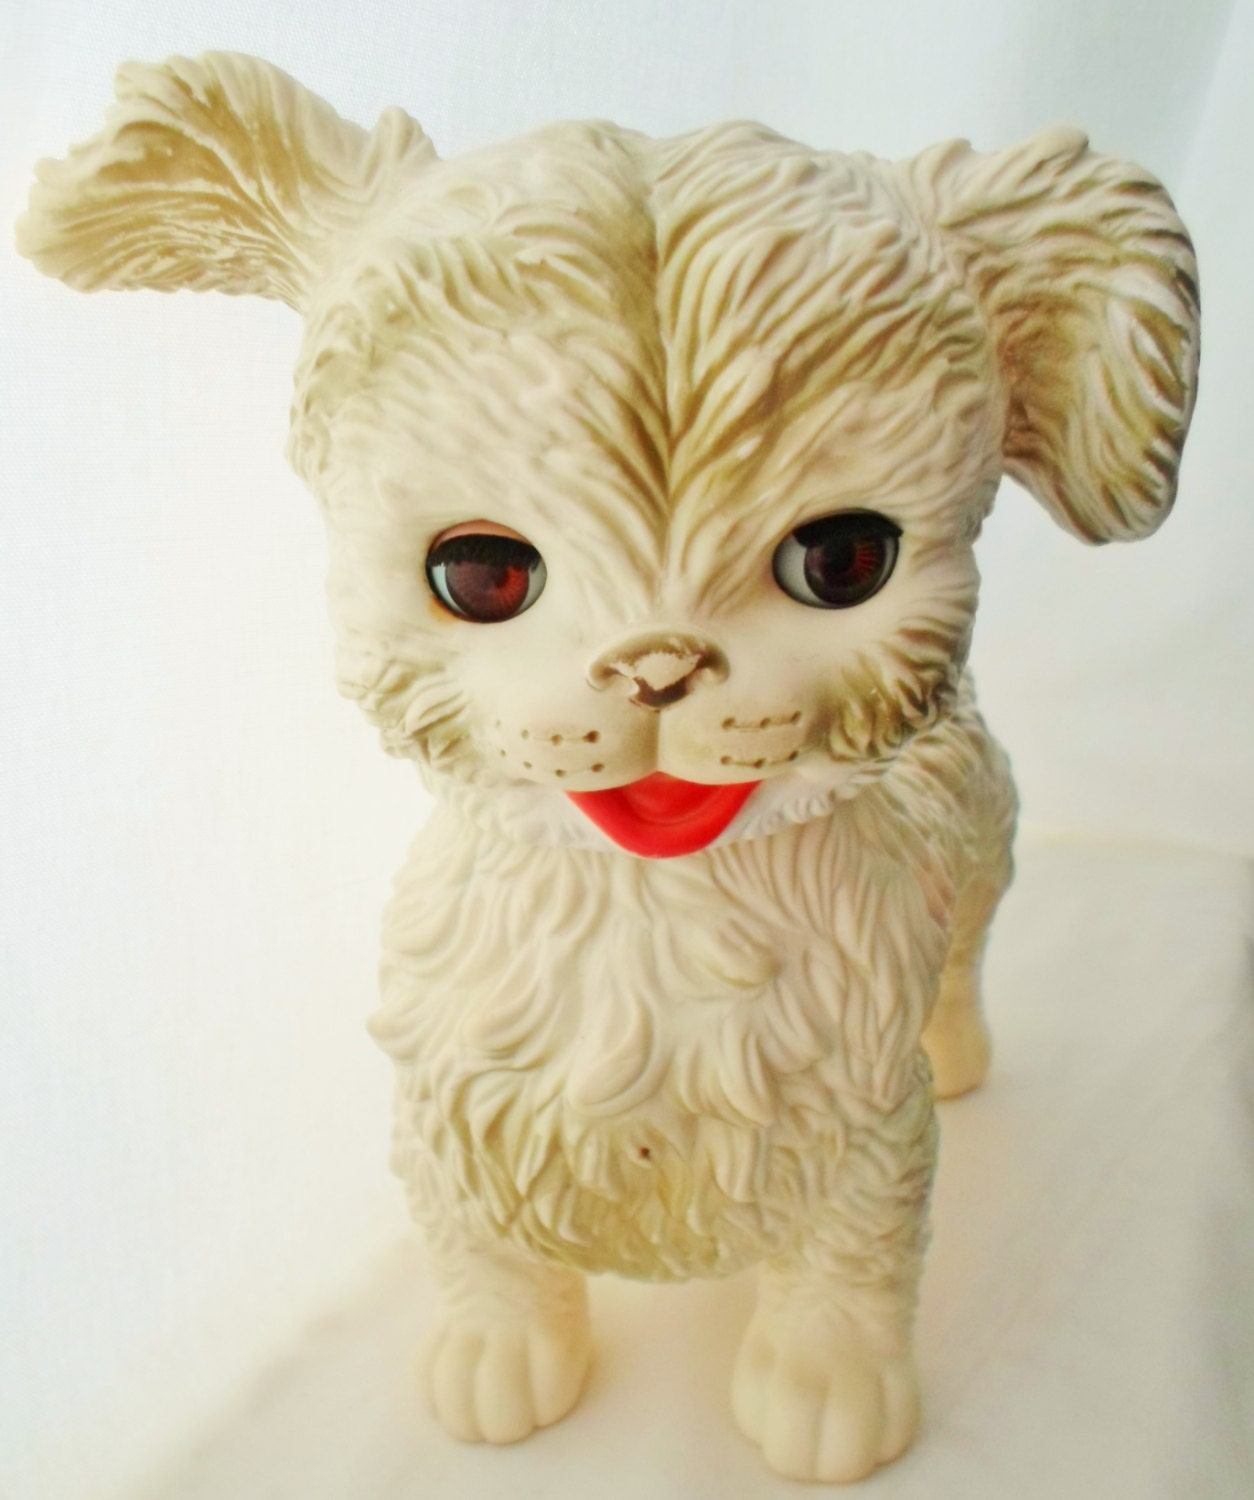 Vintage Rubber Squeak Dog Toy The Edward Mobley Co Mfb By